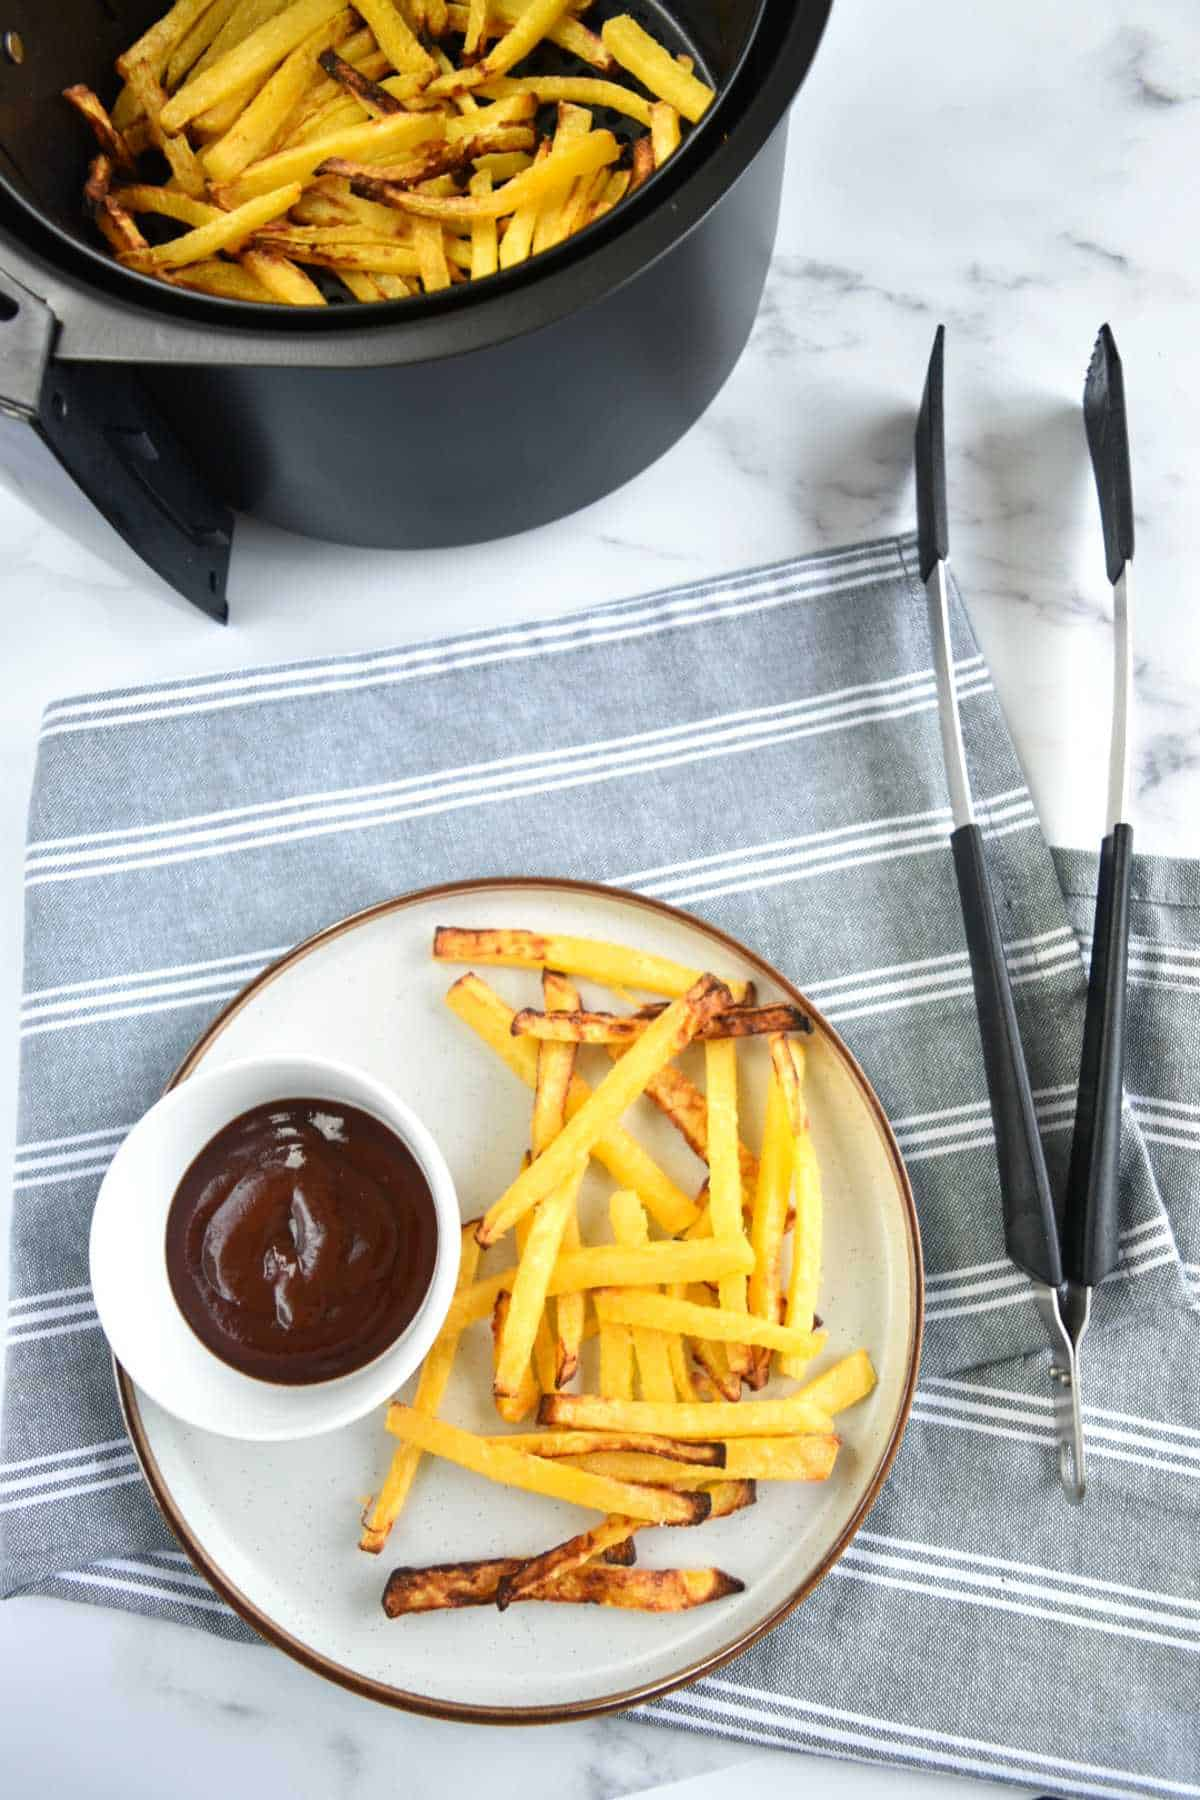 Rutabaga fries on a plate with BBQ sauce, with tongs and an air fryer next to it.